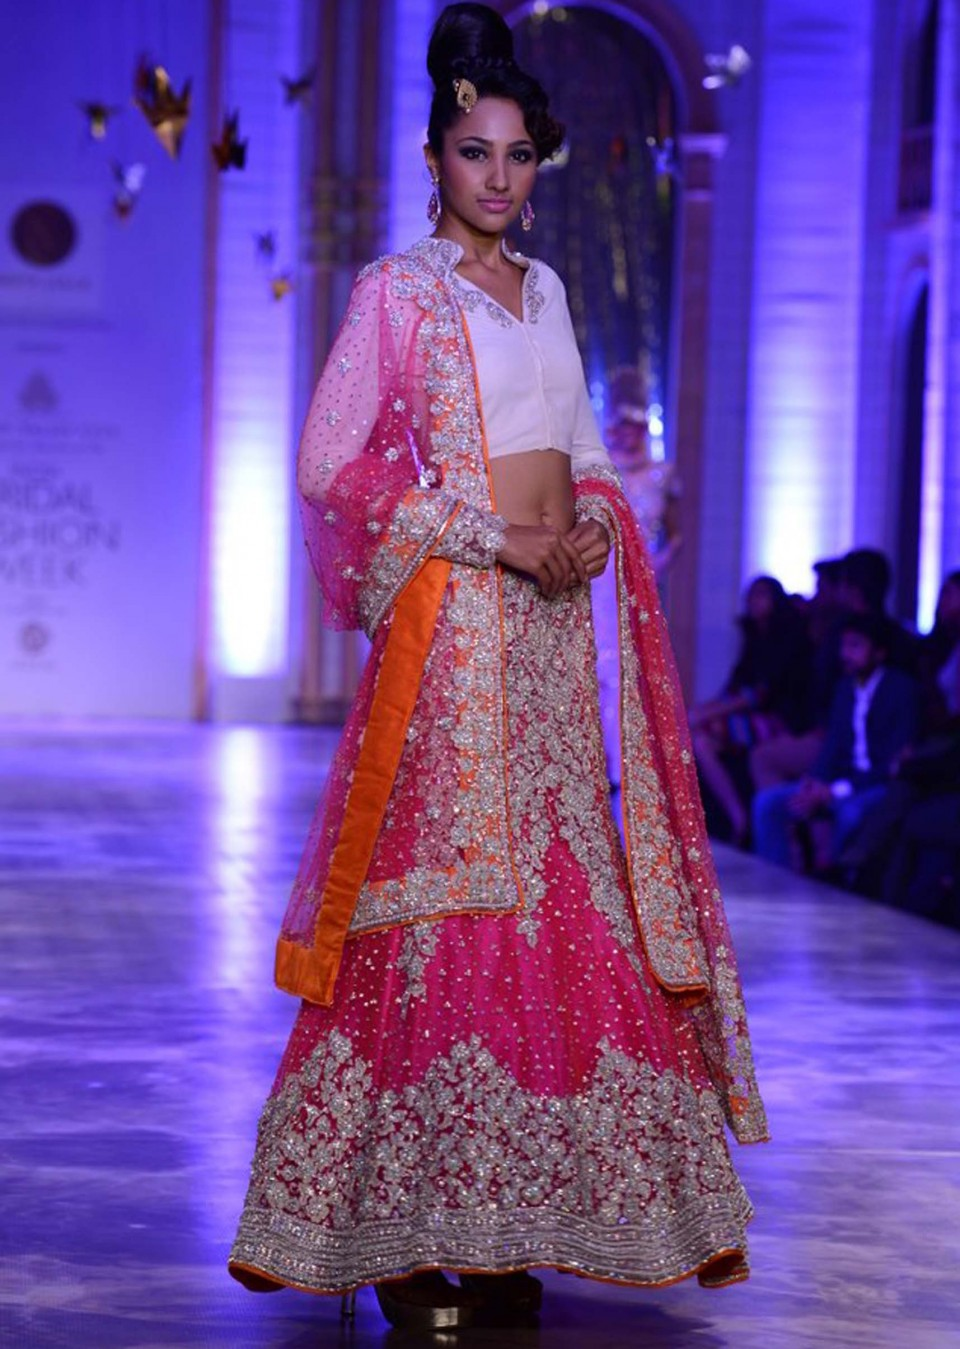 NEETA-LULLA-INDIAN-BRIDAL-DRESSES-COLLECTION-2-e1459523353154.jpg